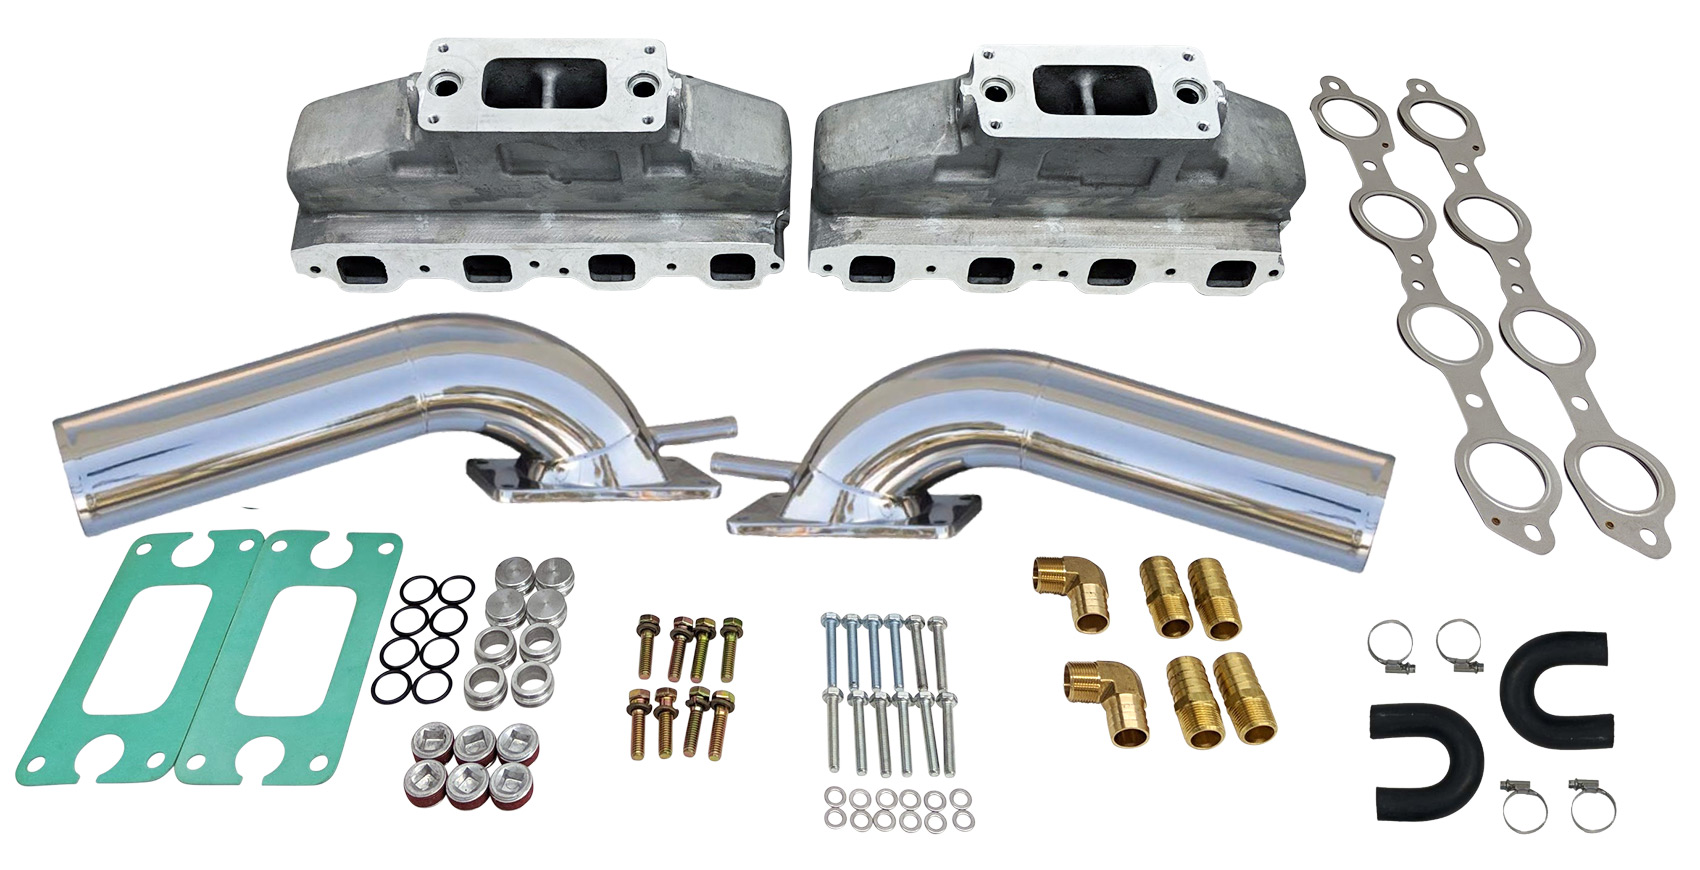 Hardin Marine Ls Marine Aluminum Exhaust Manifold System With Stainless Risers For Gm 4 8 5 3 6 0 6 2